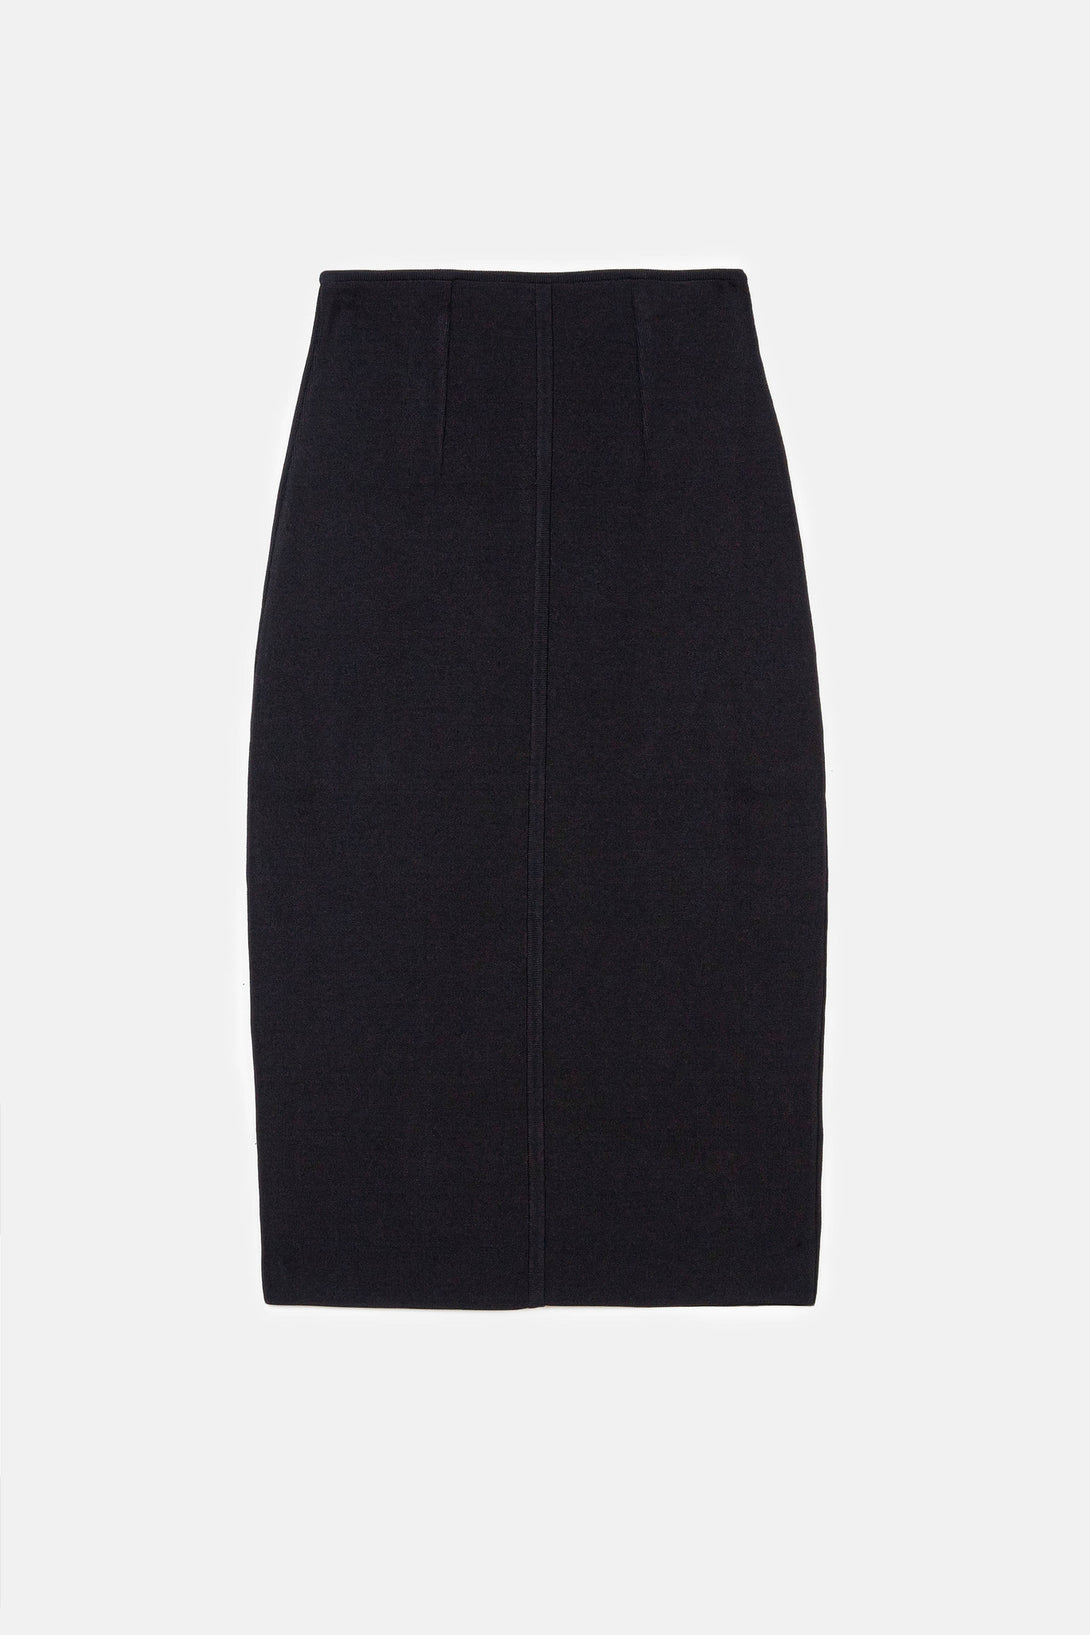 Knit Pencil Skirt - Black